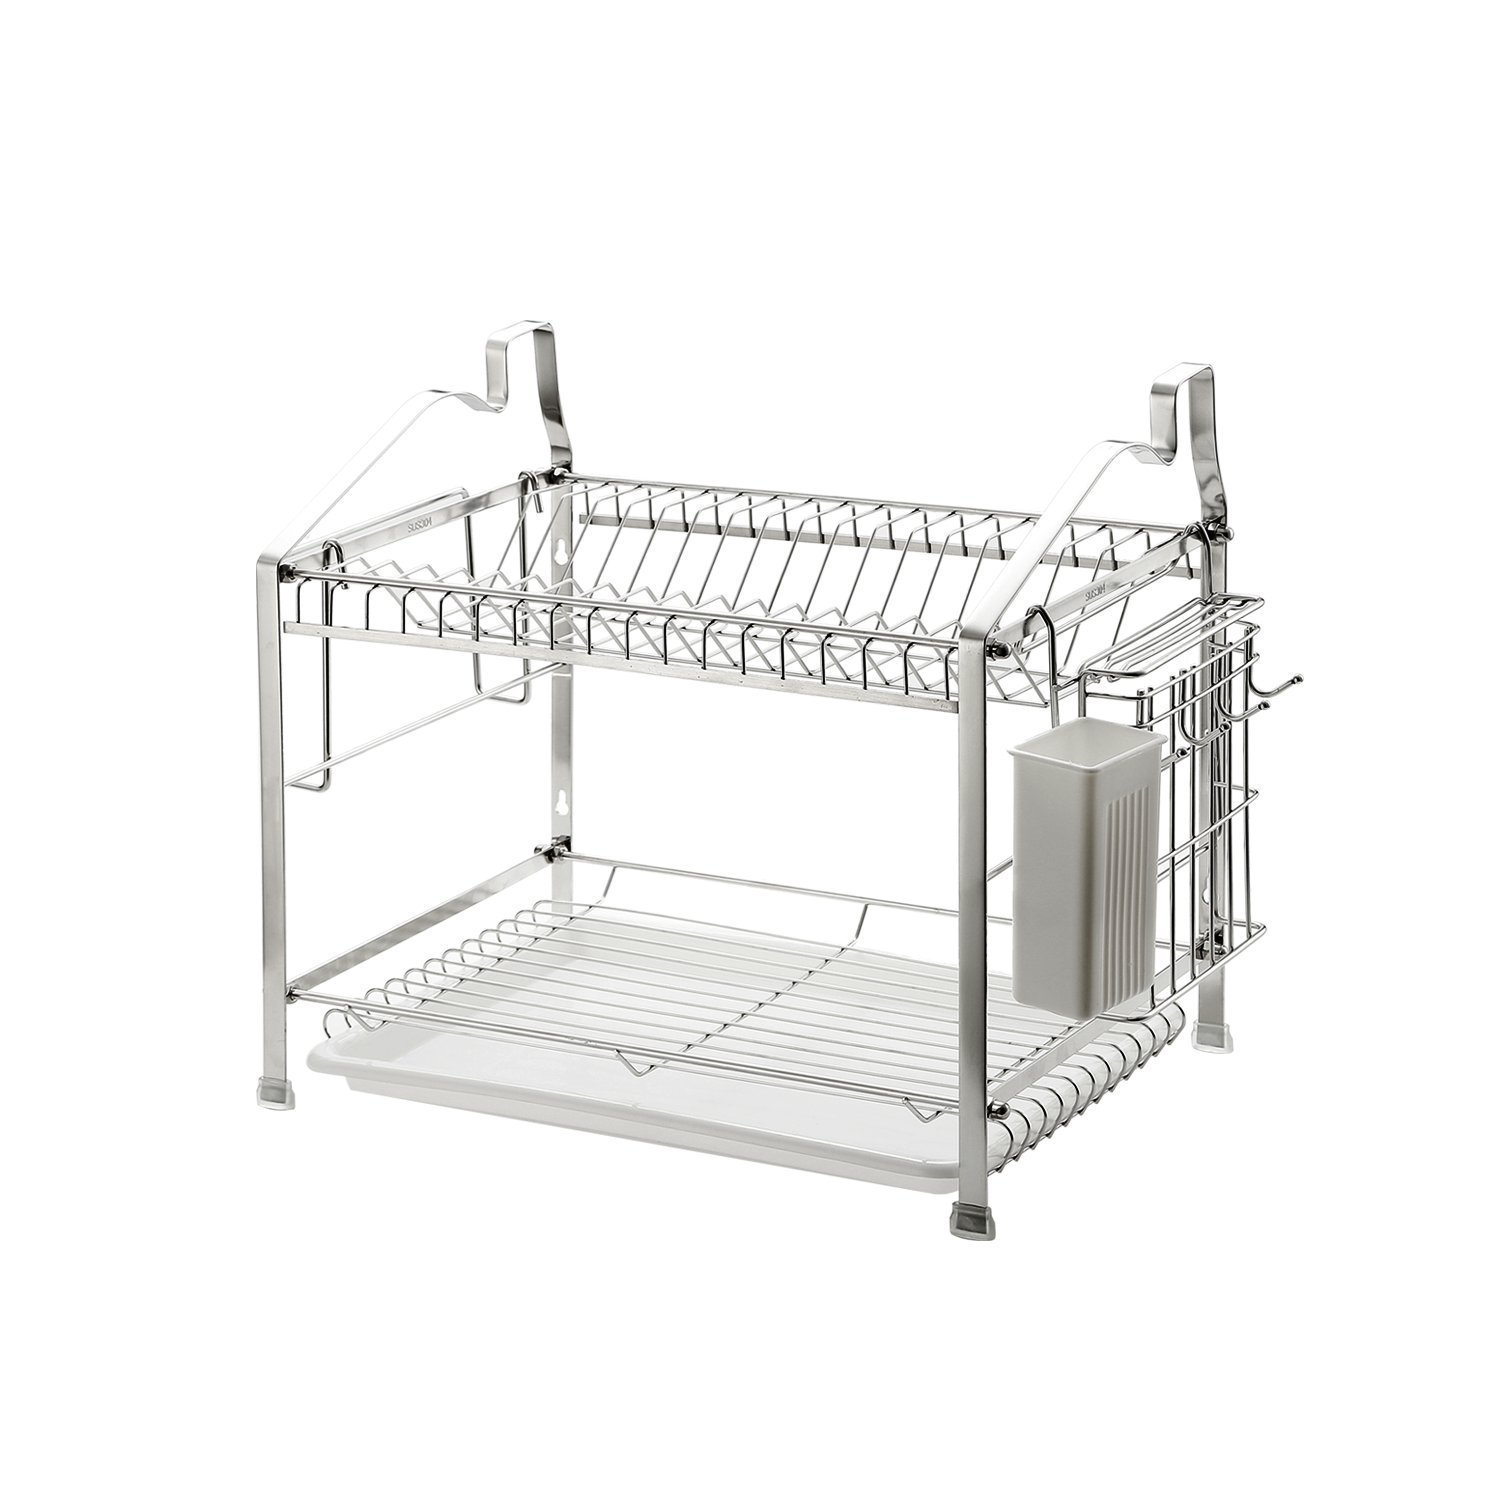 dish drying rack dish drainer kitchen storage organization stainless steel 714973728013 ebay. Black Bedroom Furniture Sets. Home Design Ideas